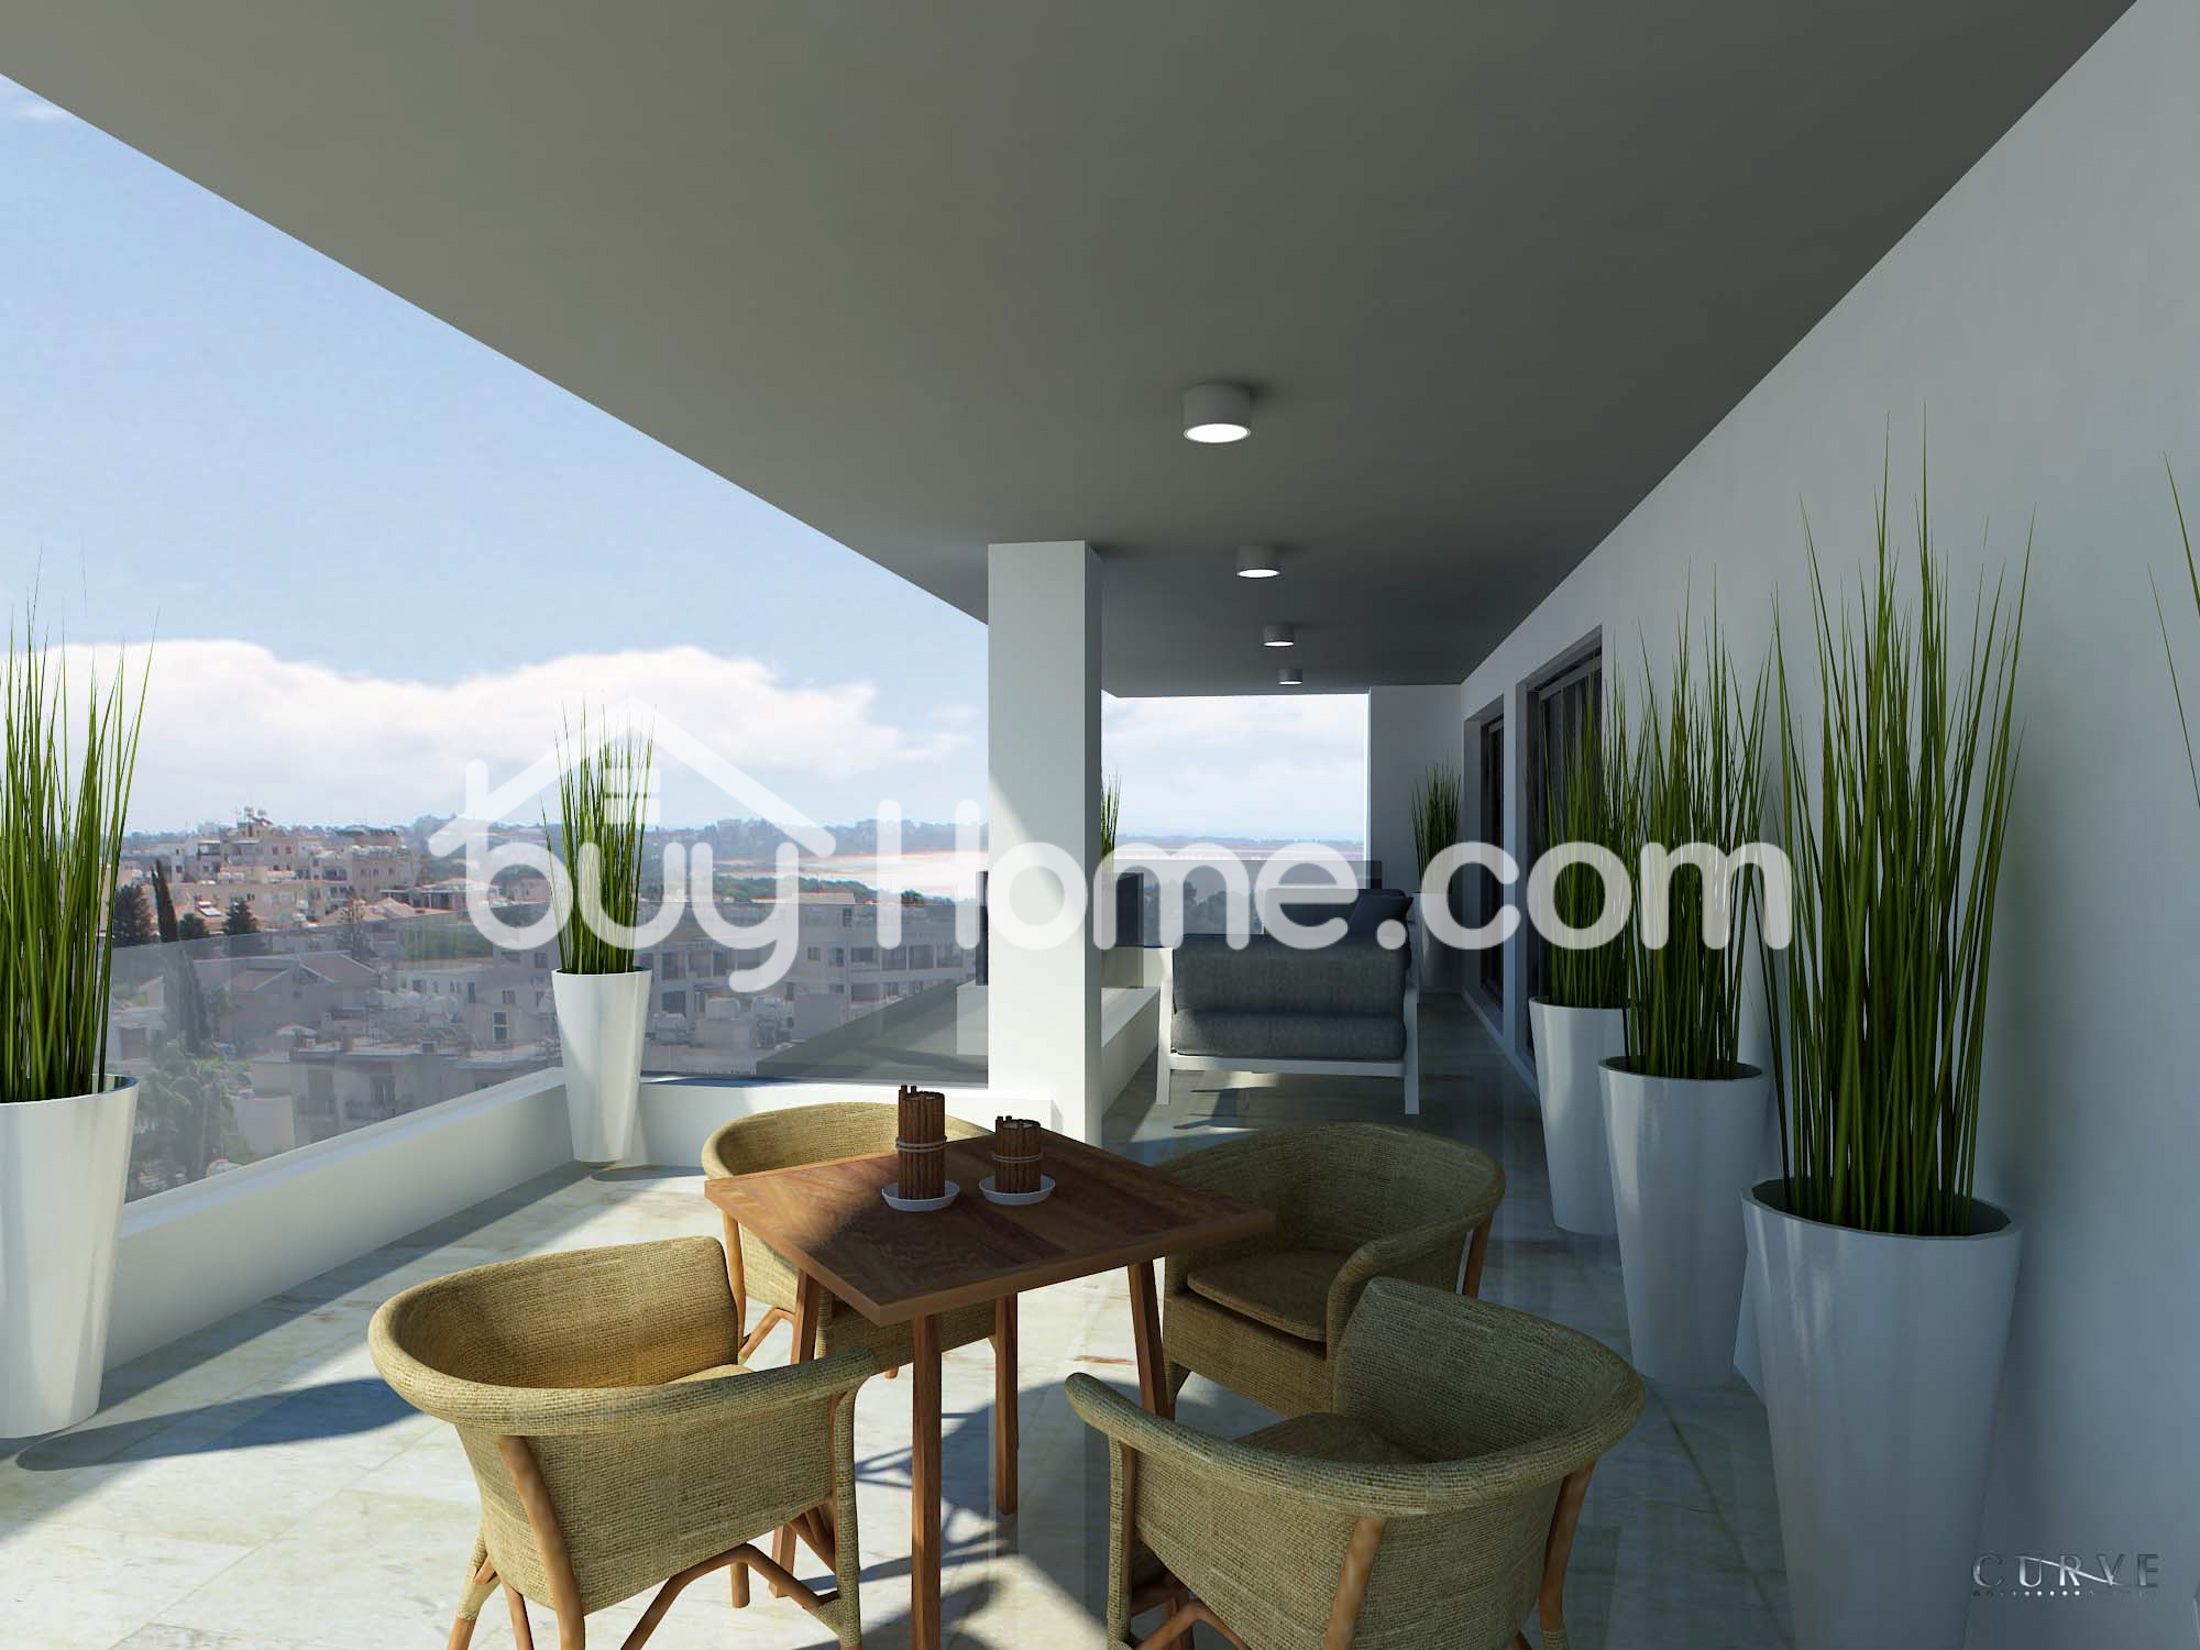 3 Bedroom Entire Floor Penthouse | BuyHome